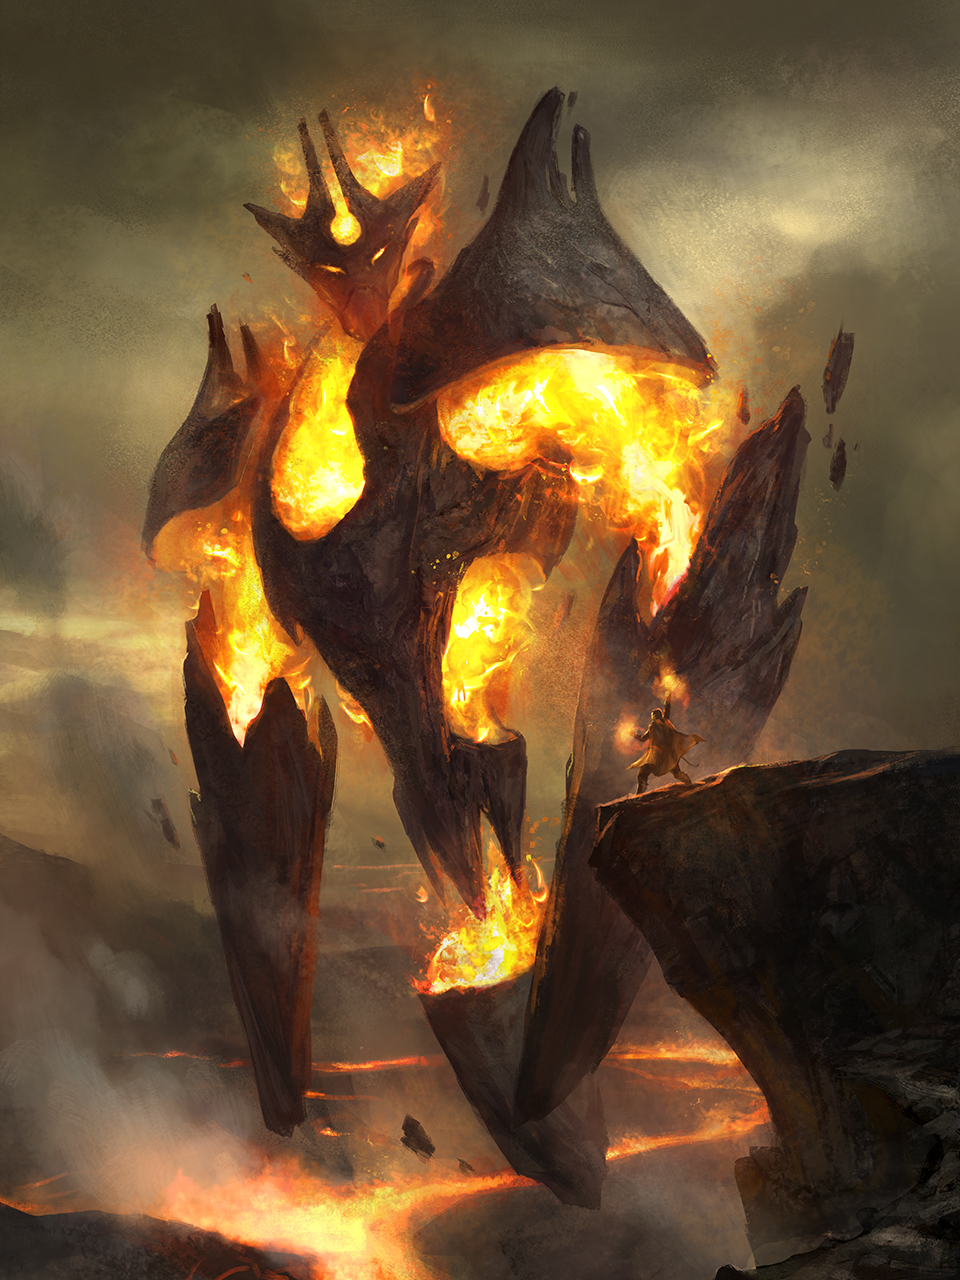 Monster_FireElemental1.4_1280px.jpg